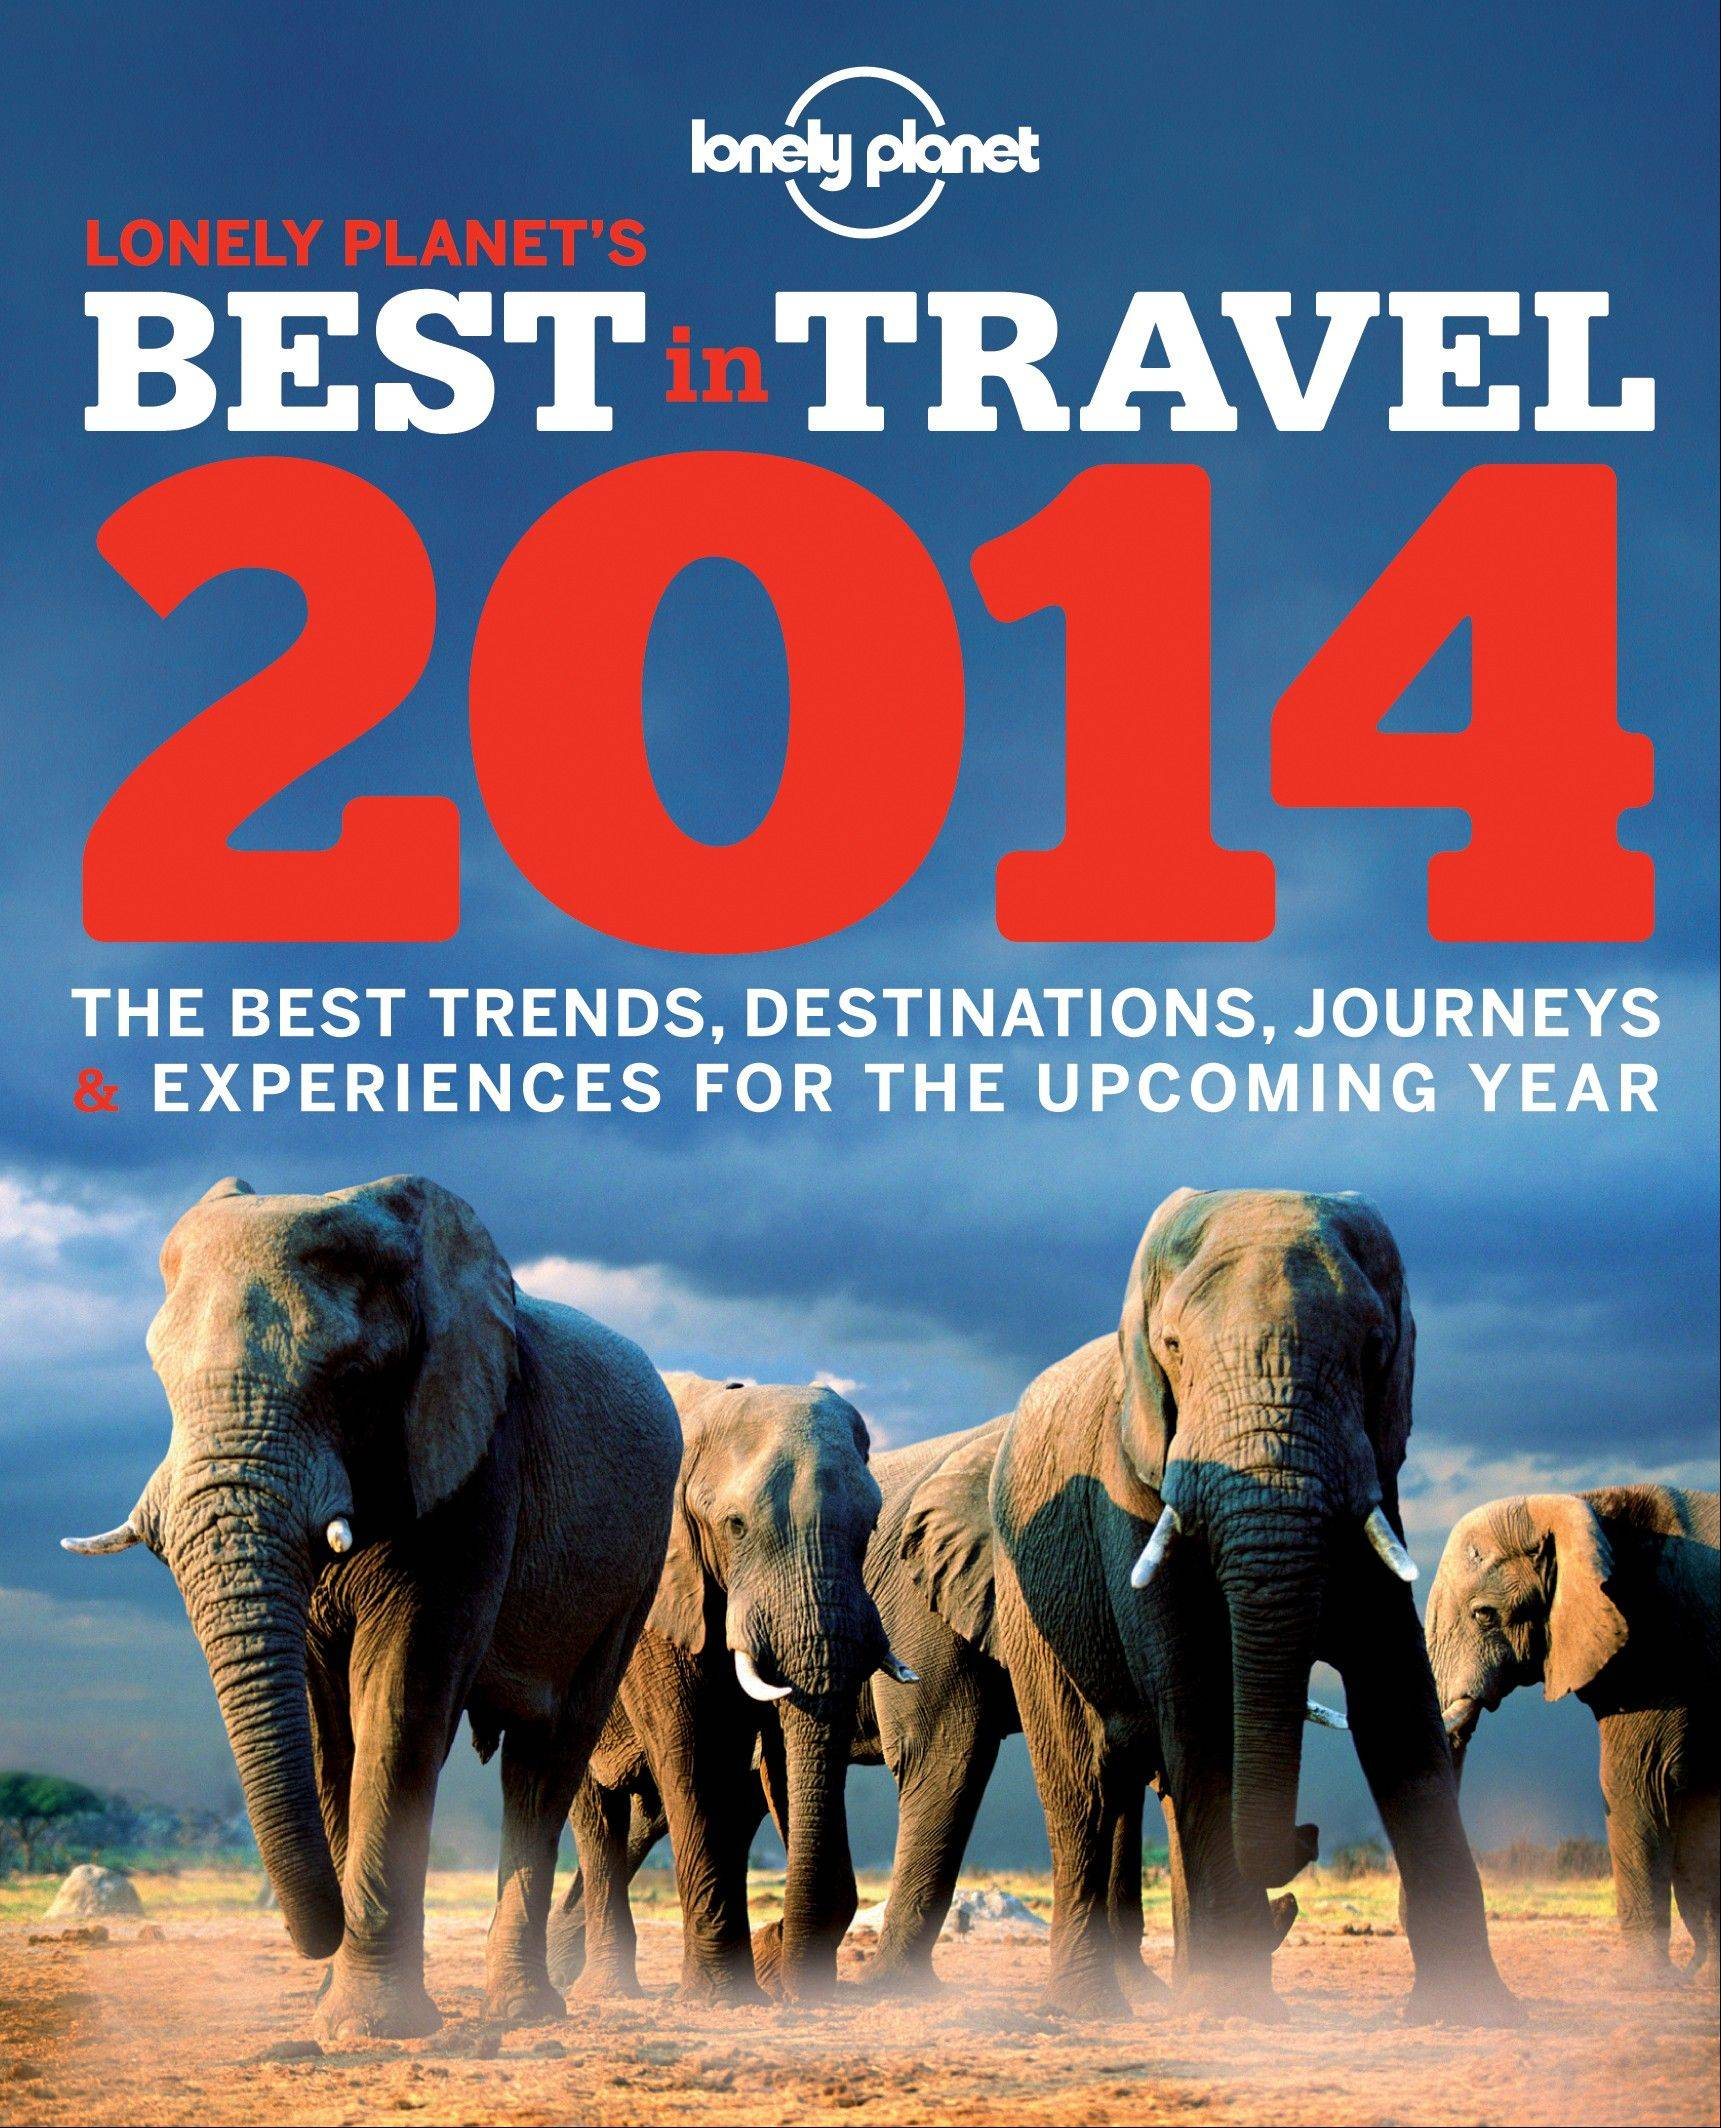 "Lonely Planet's ""Best in Travel 2014"" is an annual guide to trends, destinations, journeys and experiences for the new year."